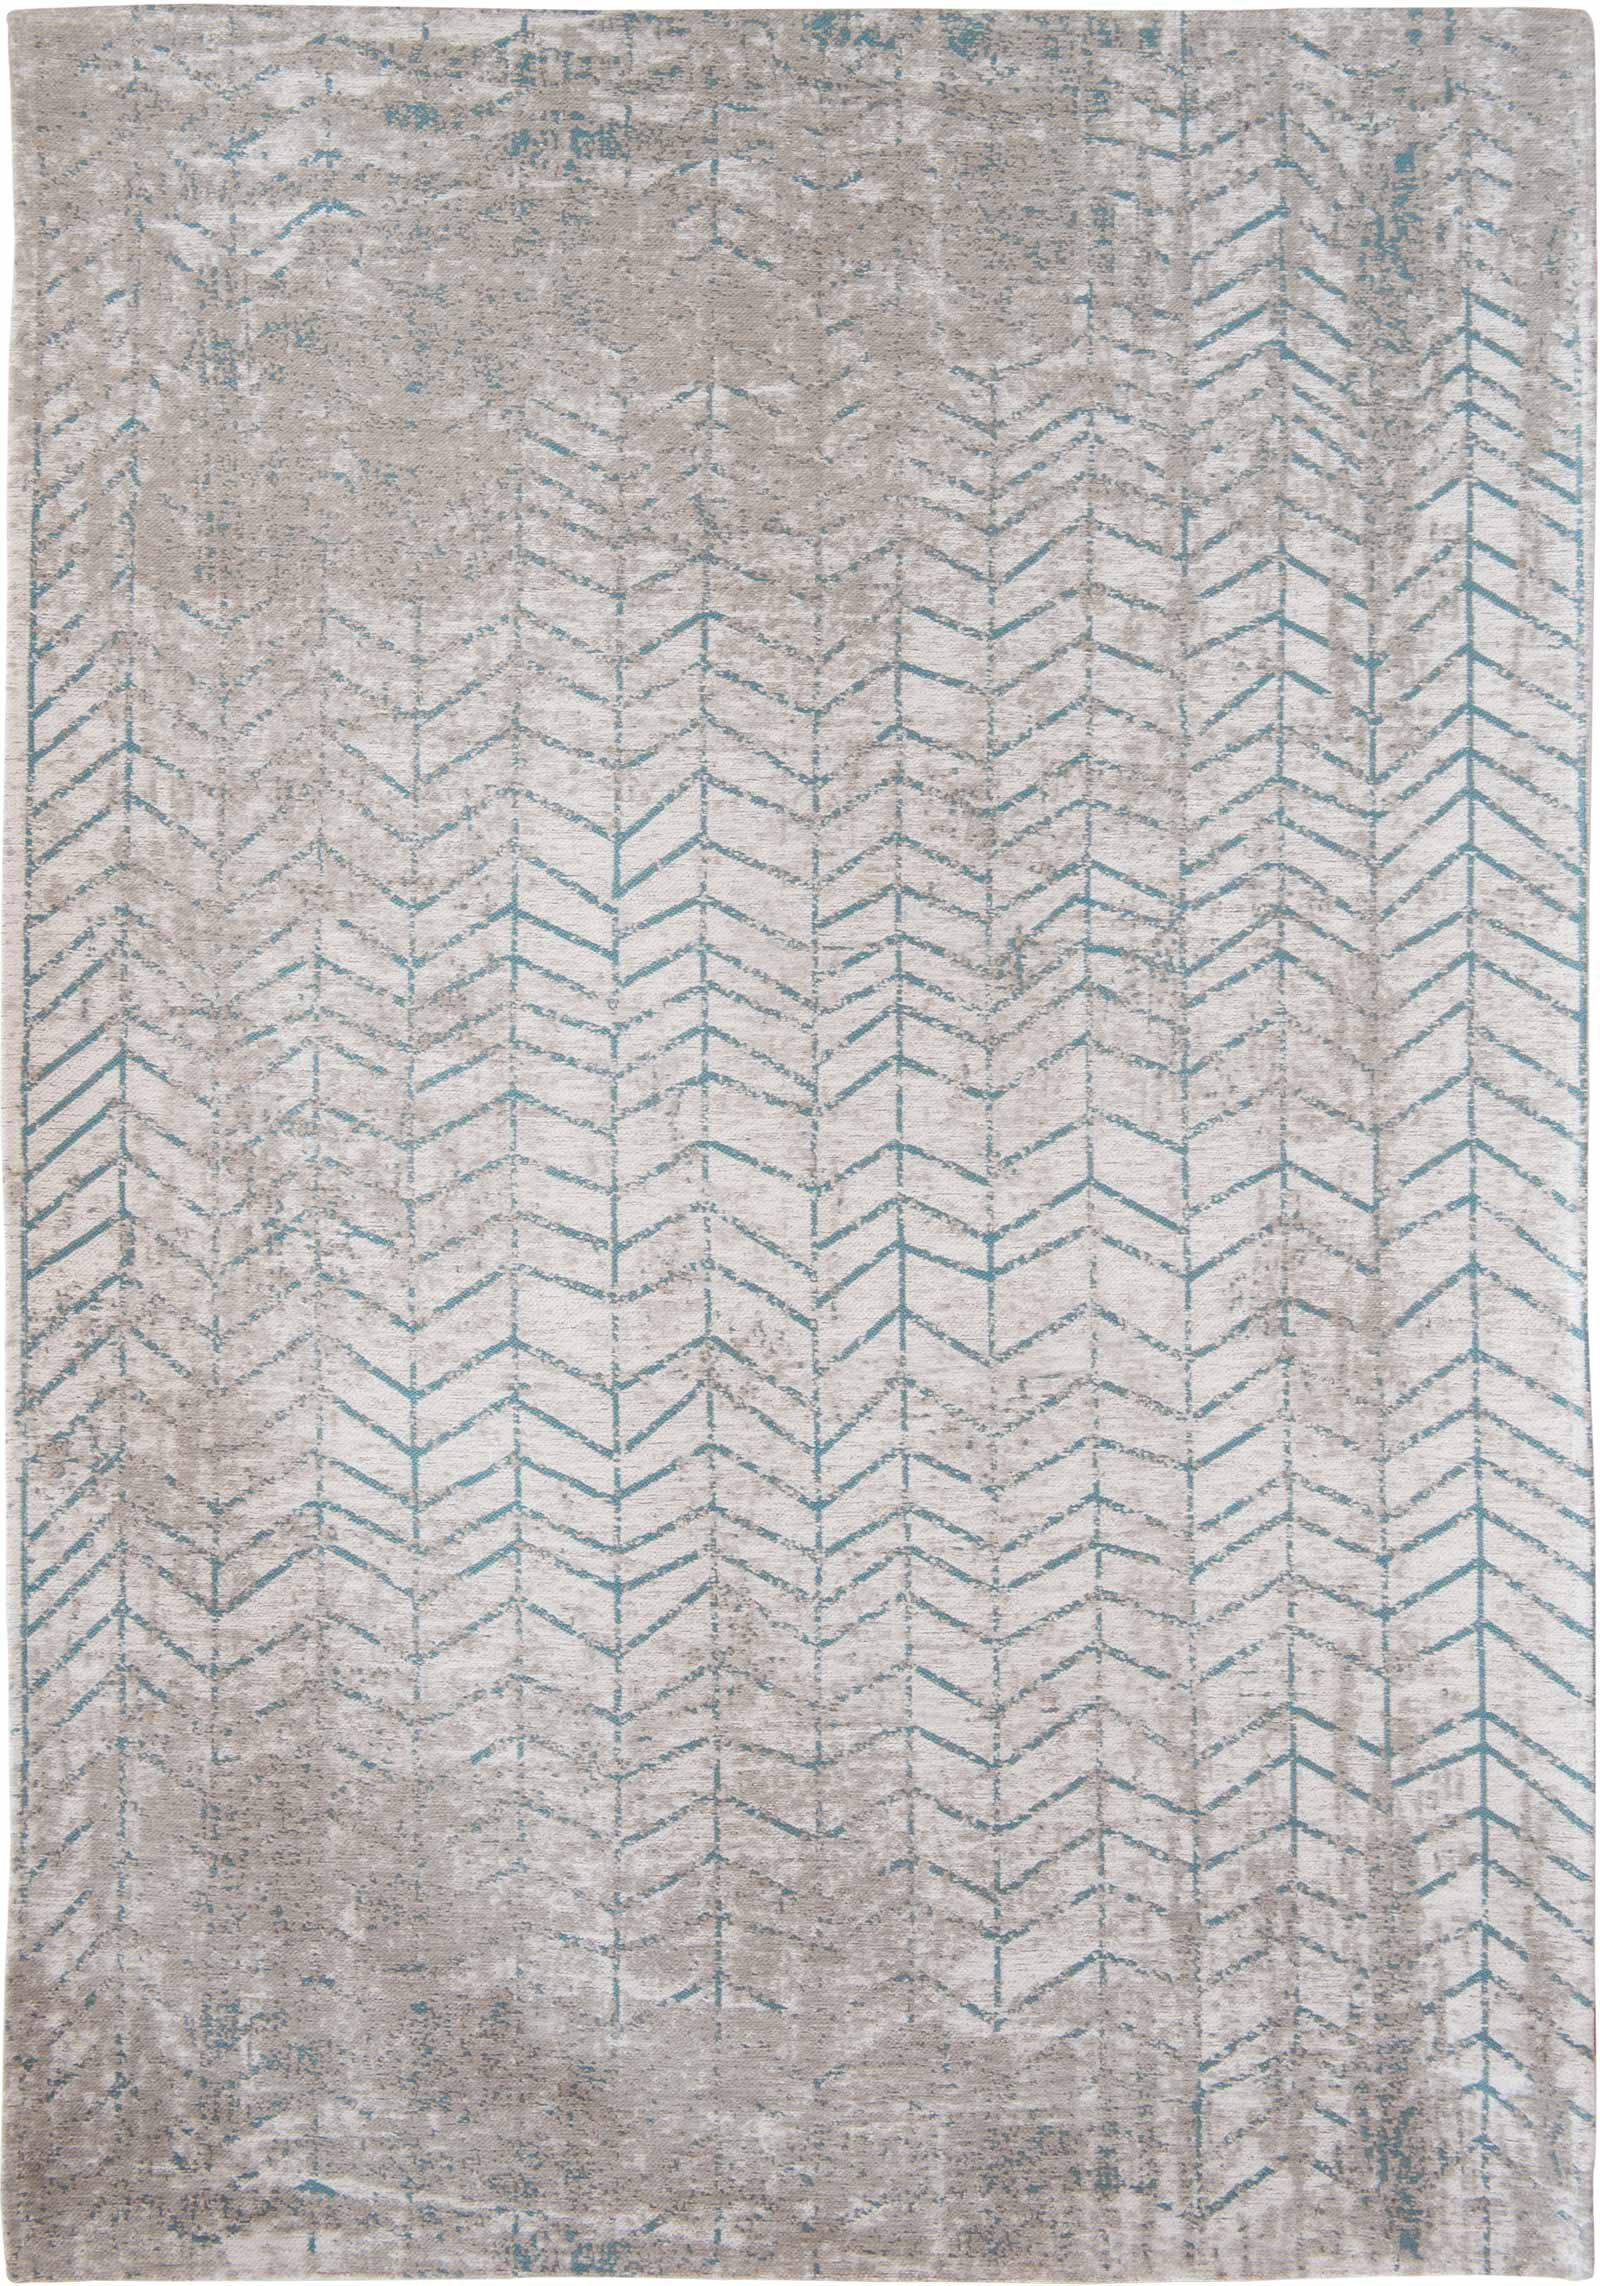 Louis De Porterre Teppiche Louis De Poortere Rug Mad Men Tribeca Blue 8927 Jacobs Ladder Design